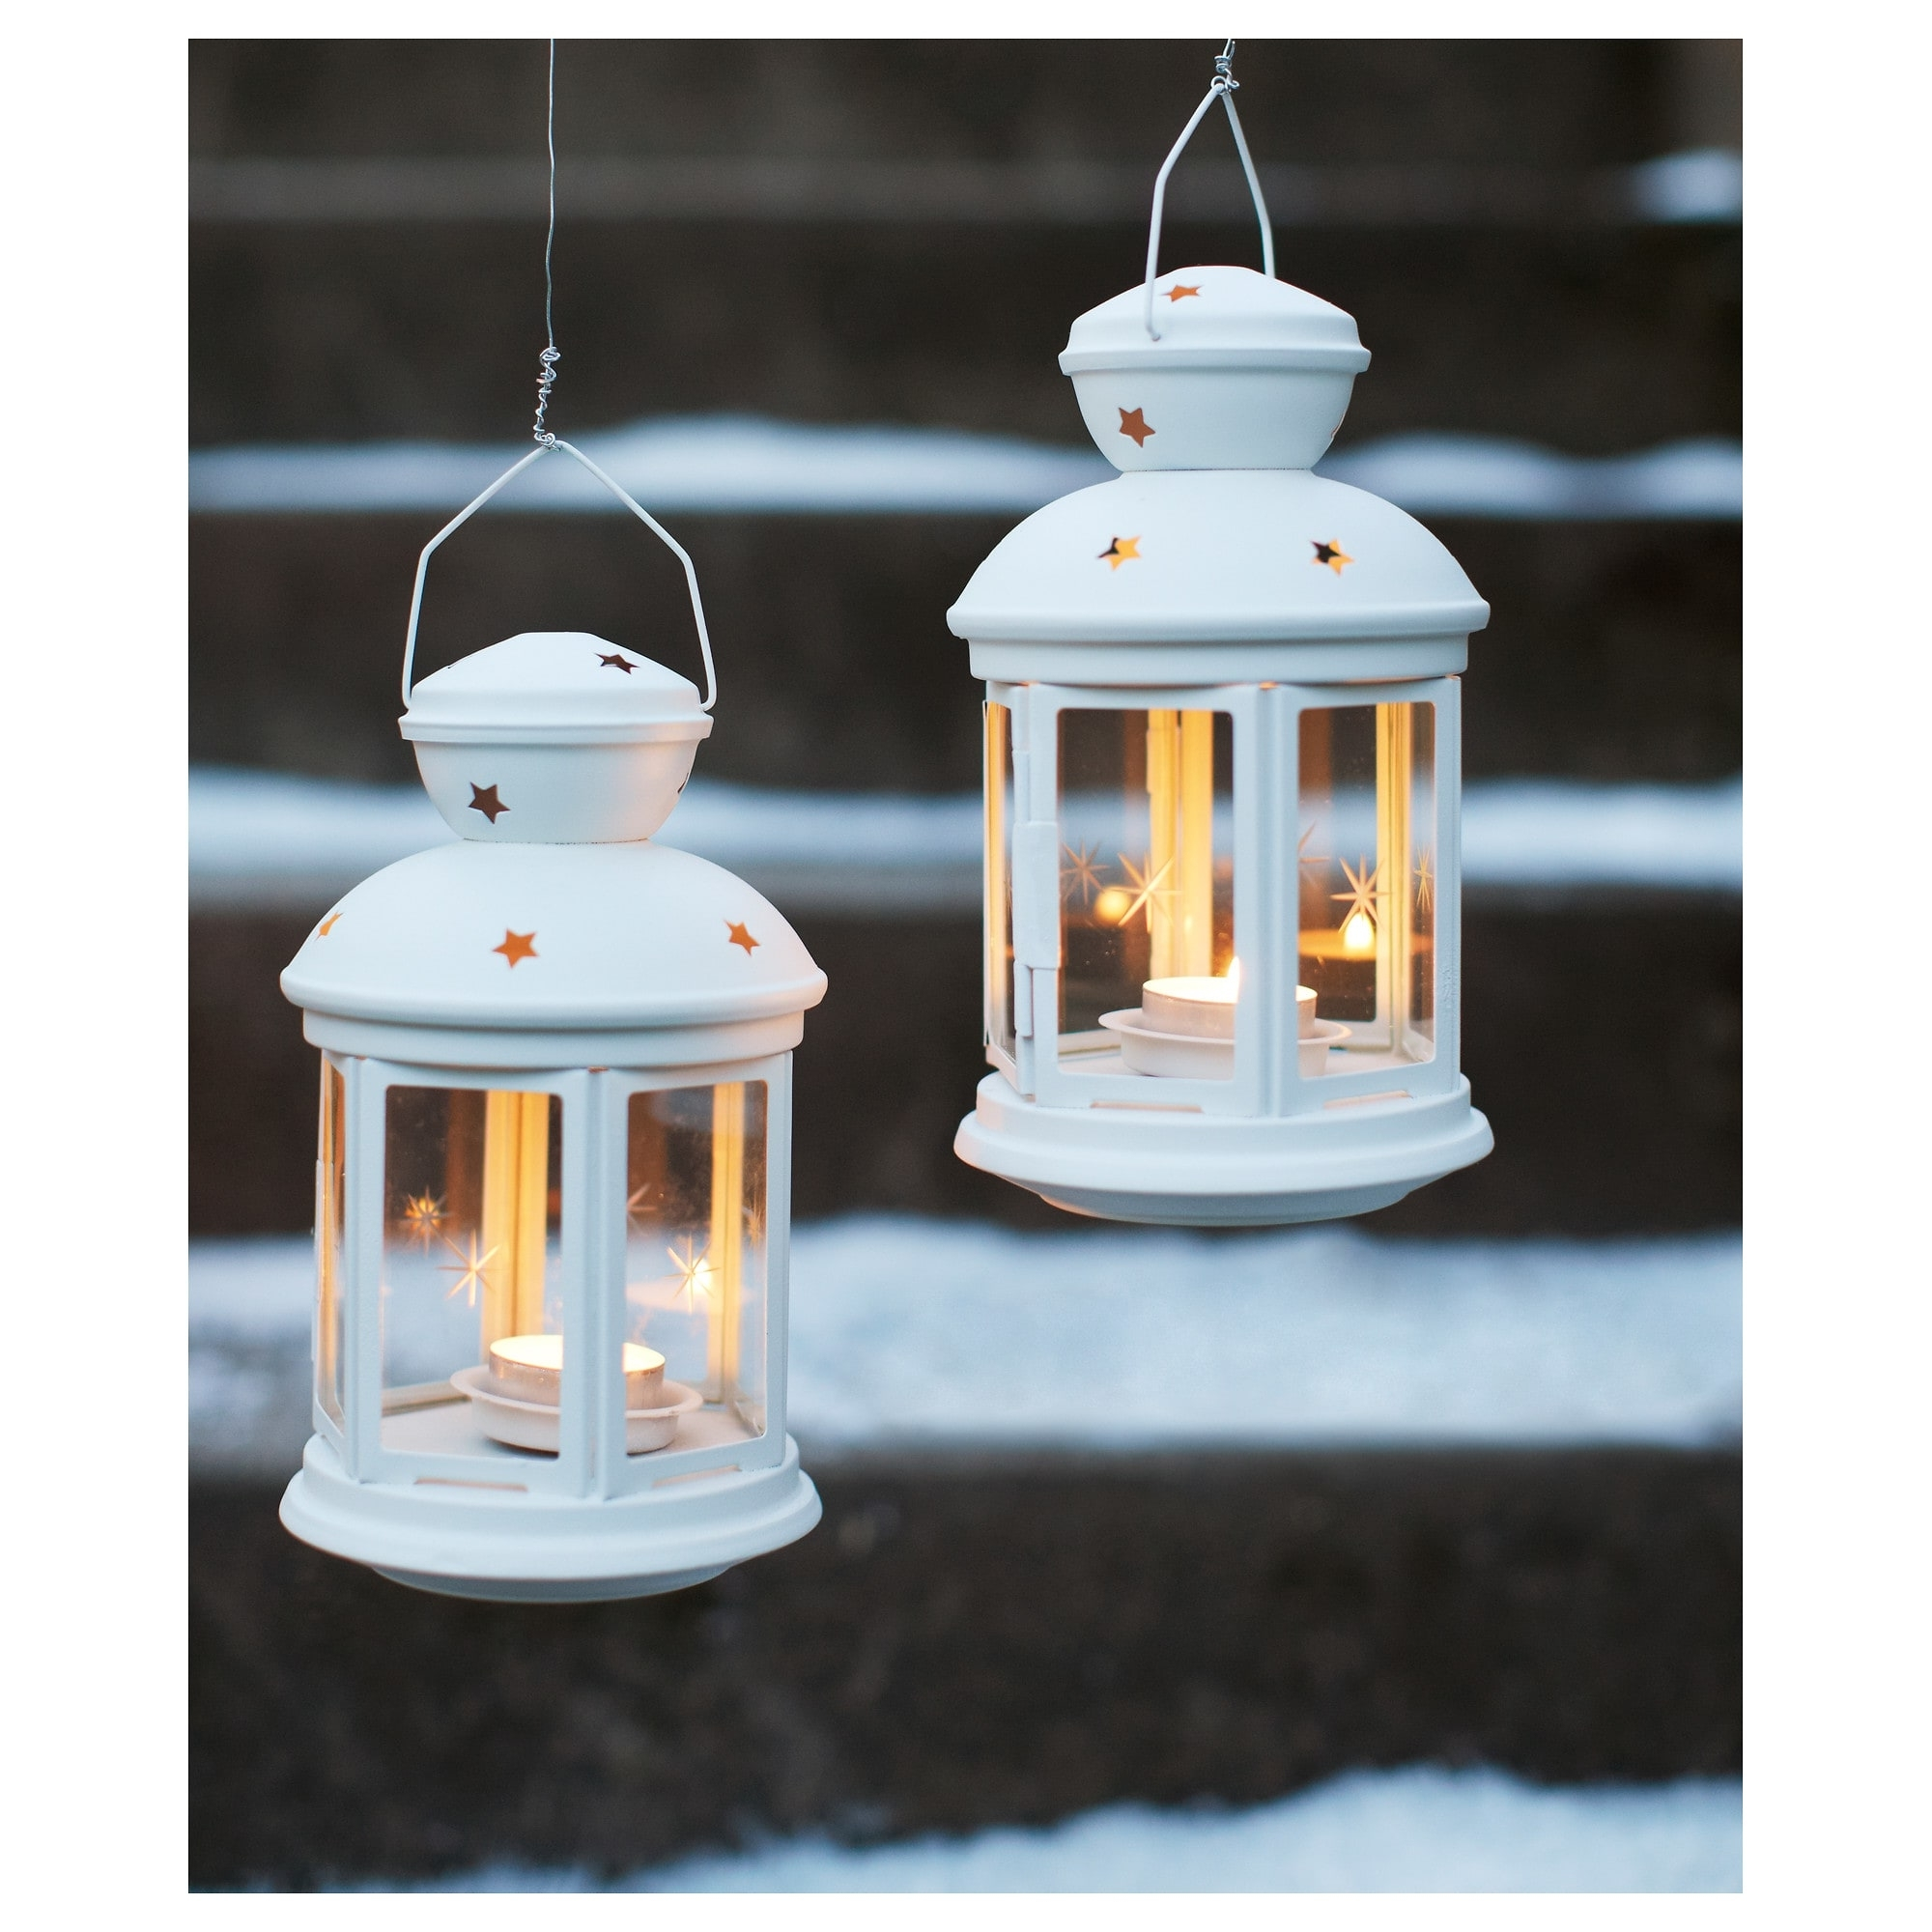 Best And Newest Rotera Lantern For Tealight In/outdoor White 21 Cm – Ikea Pertaining To Ikea Outdoor Lanterns (View 12 of 20)